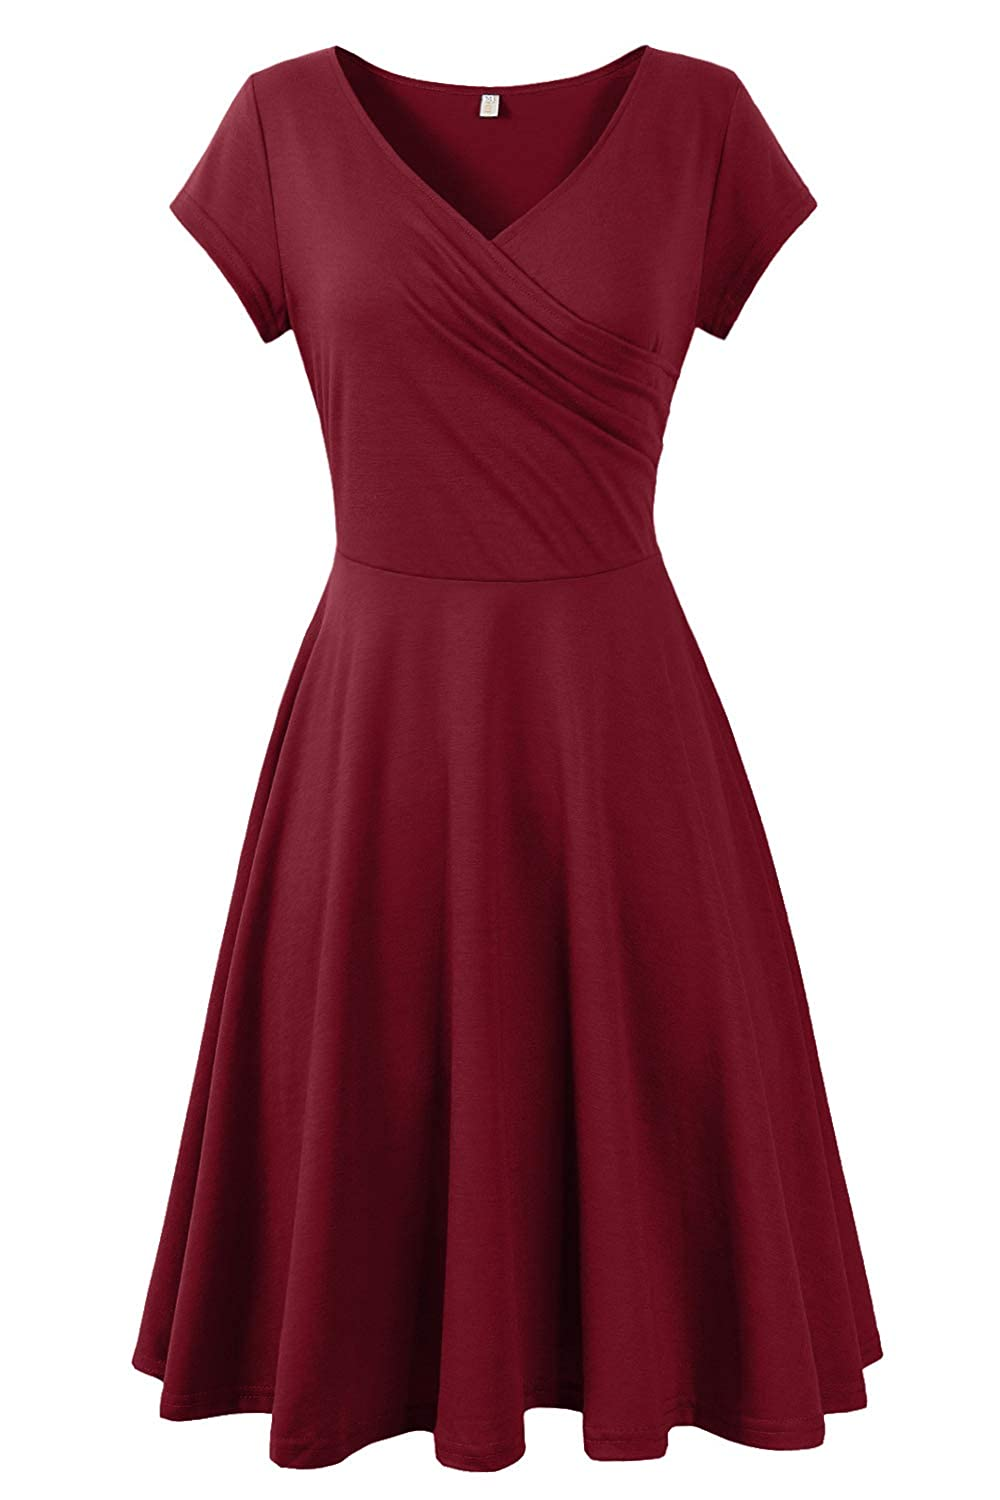 21734b41035ab Genhoo Women V-Neck Skater Dresses A-Line Fit and Flare Swing Party Dress  Casual Elegant Midi Dress